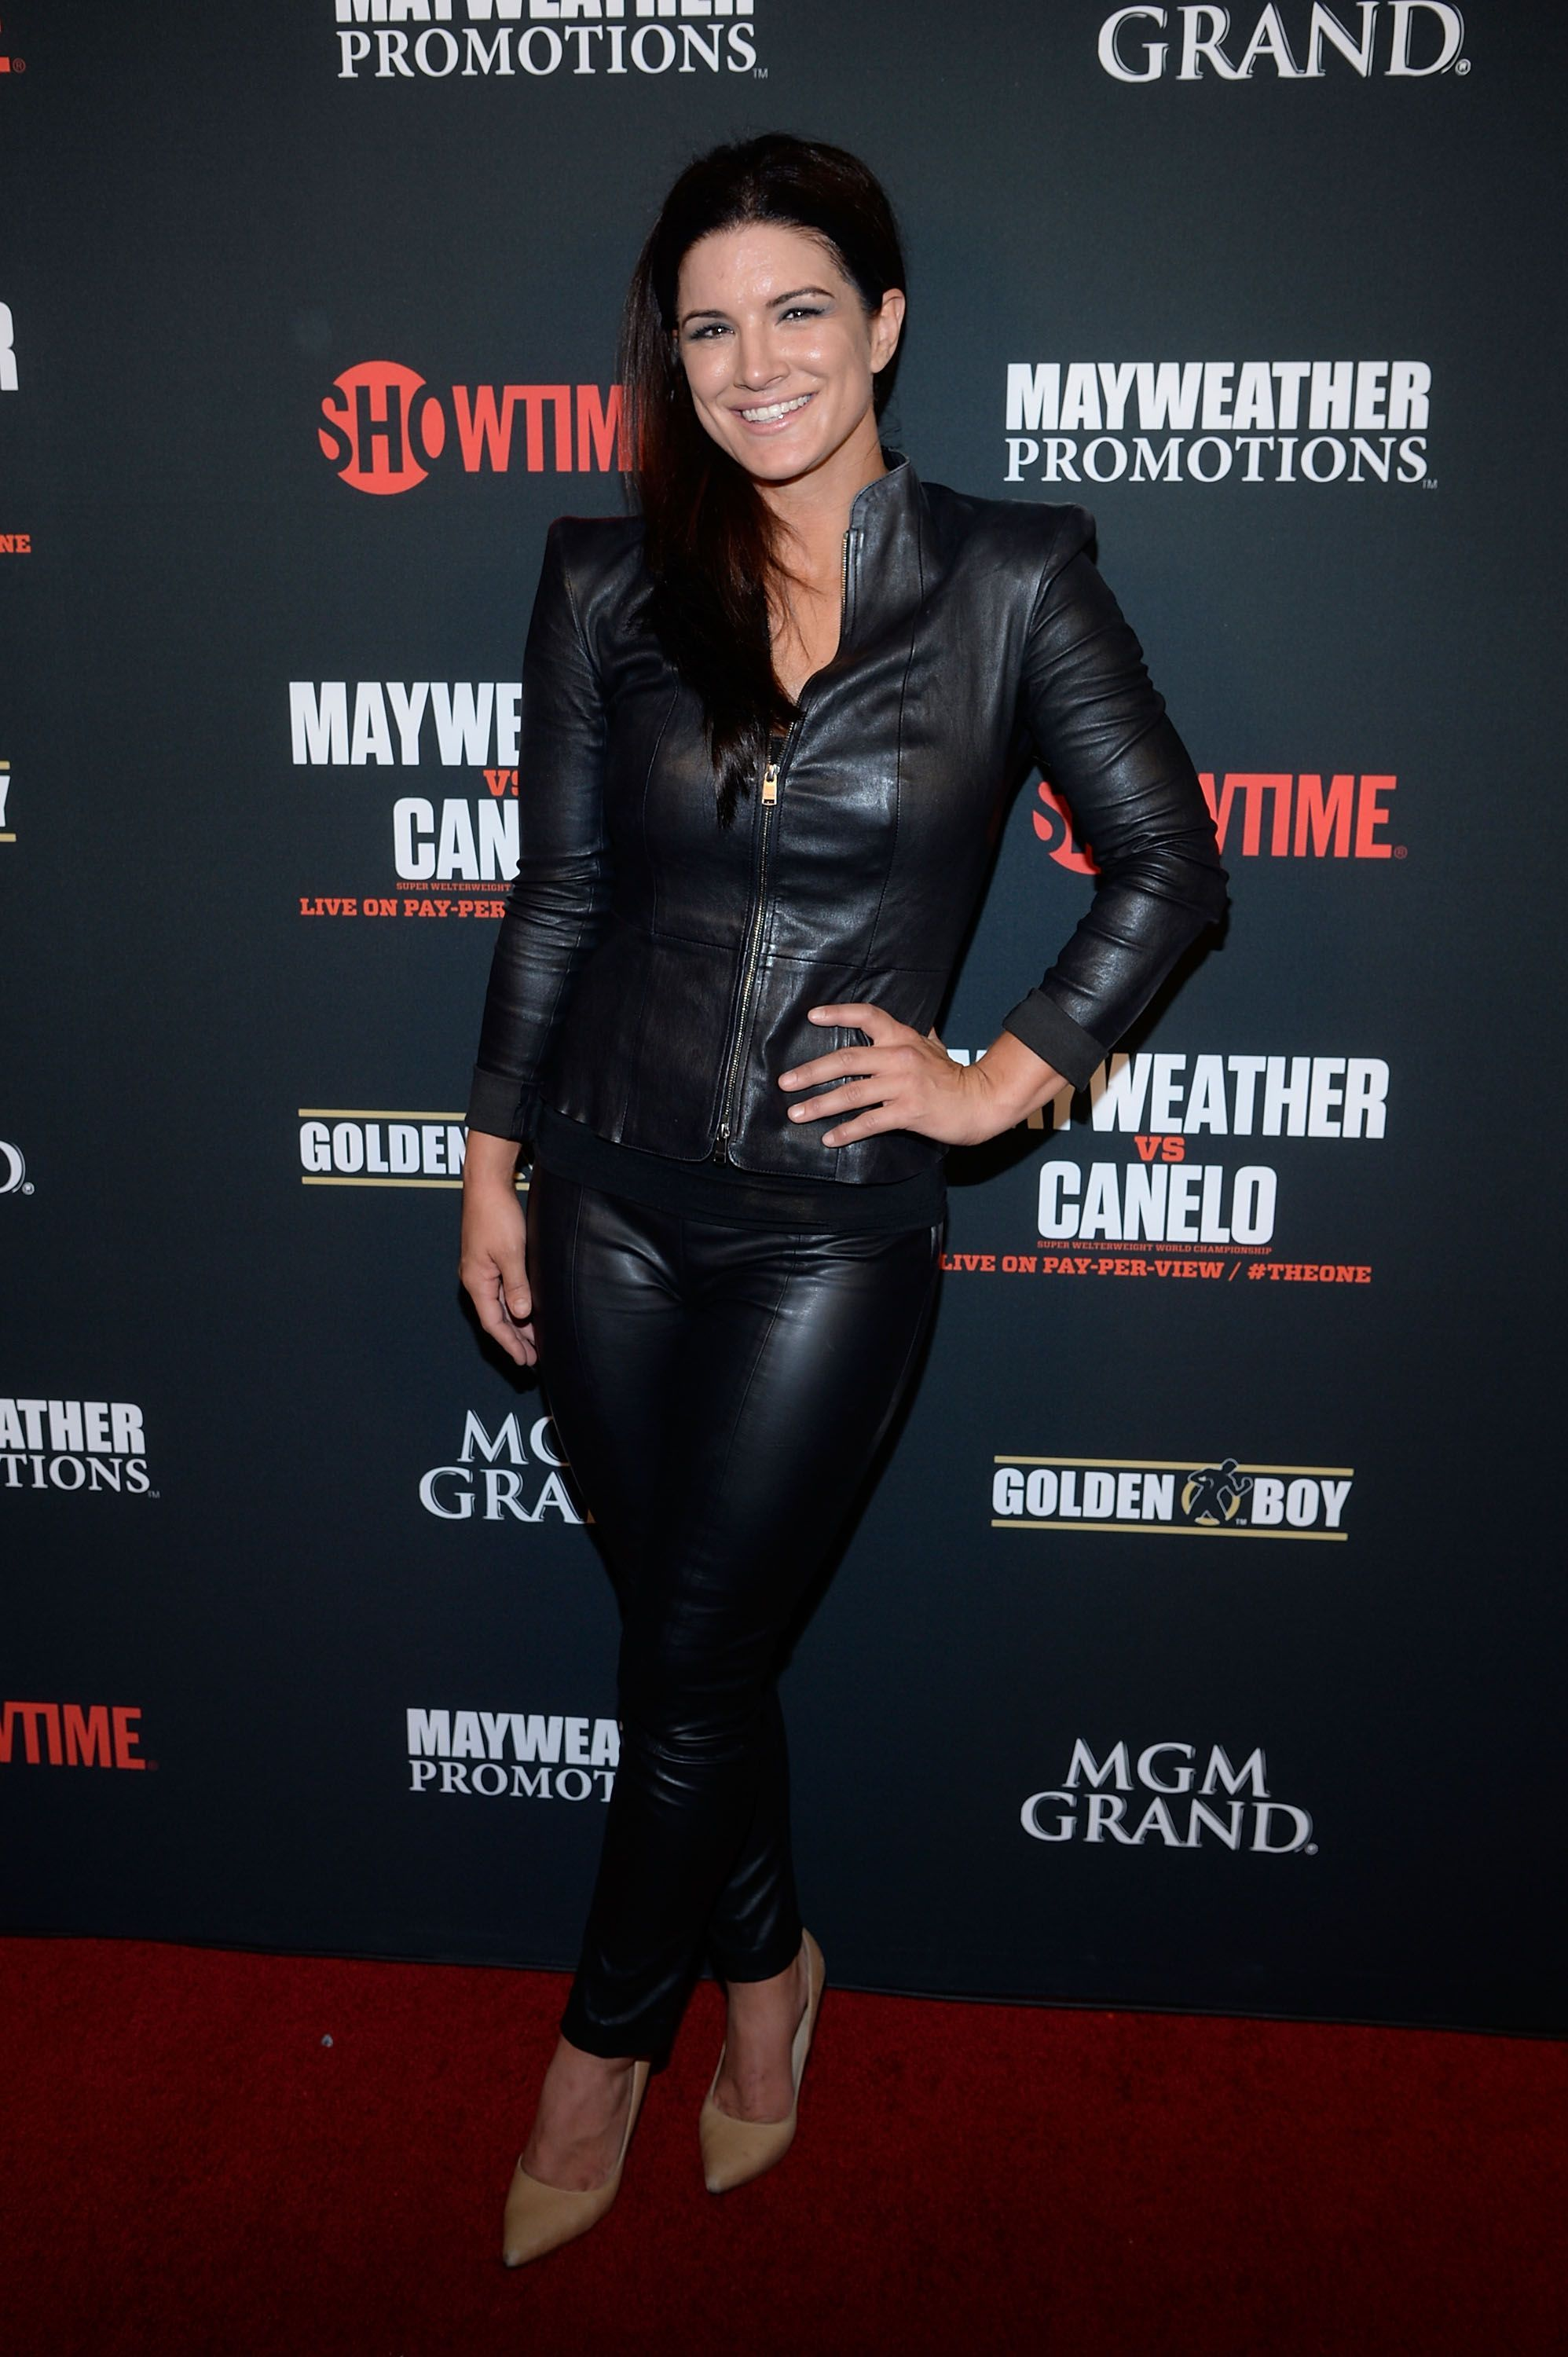 Gina carano diet plan and workout routine healthy celeb - Gina Joy Carano Was Born On April 16 1982